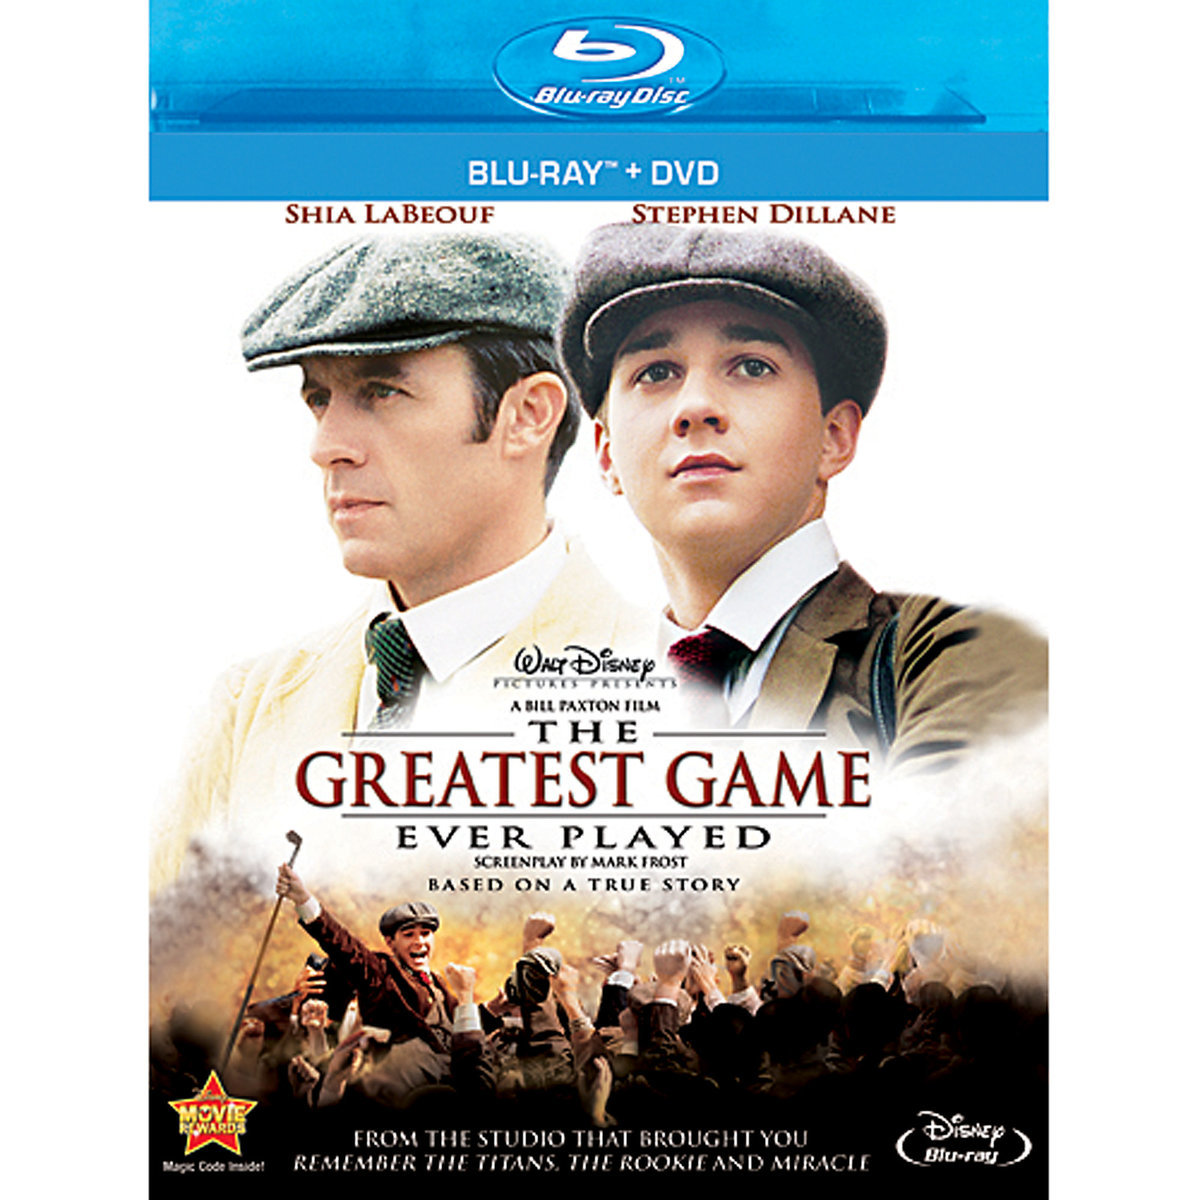 The Greatest Game Ever Played (Blu-ray + DVD)